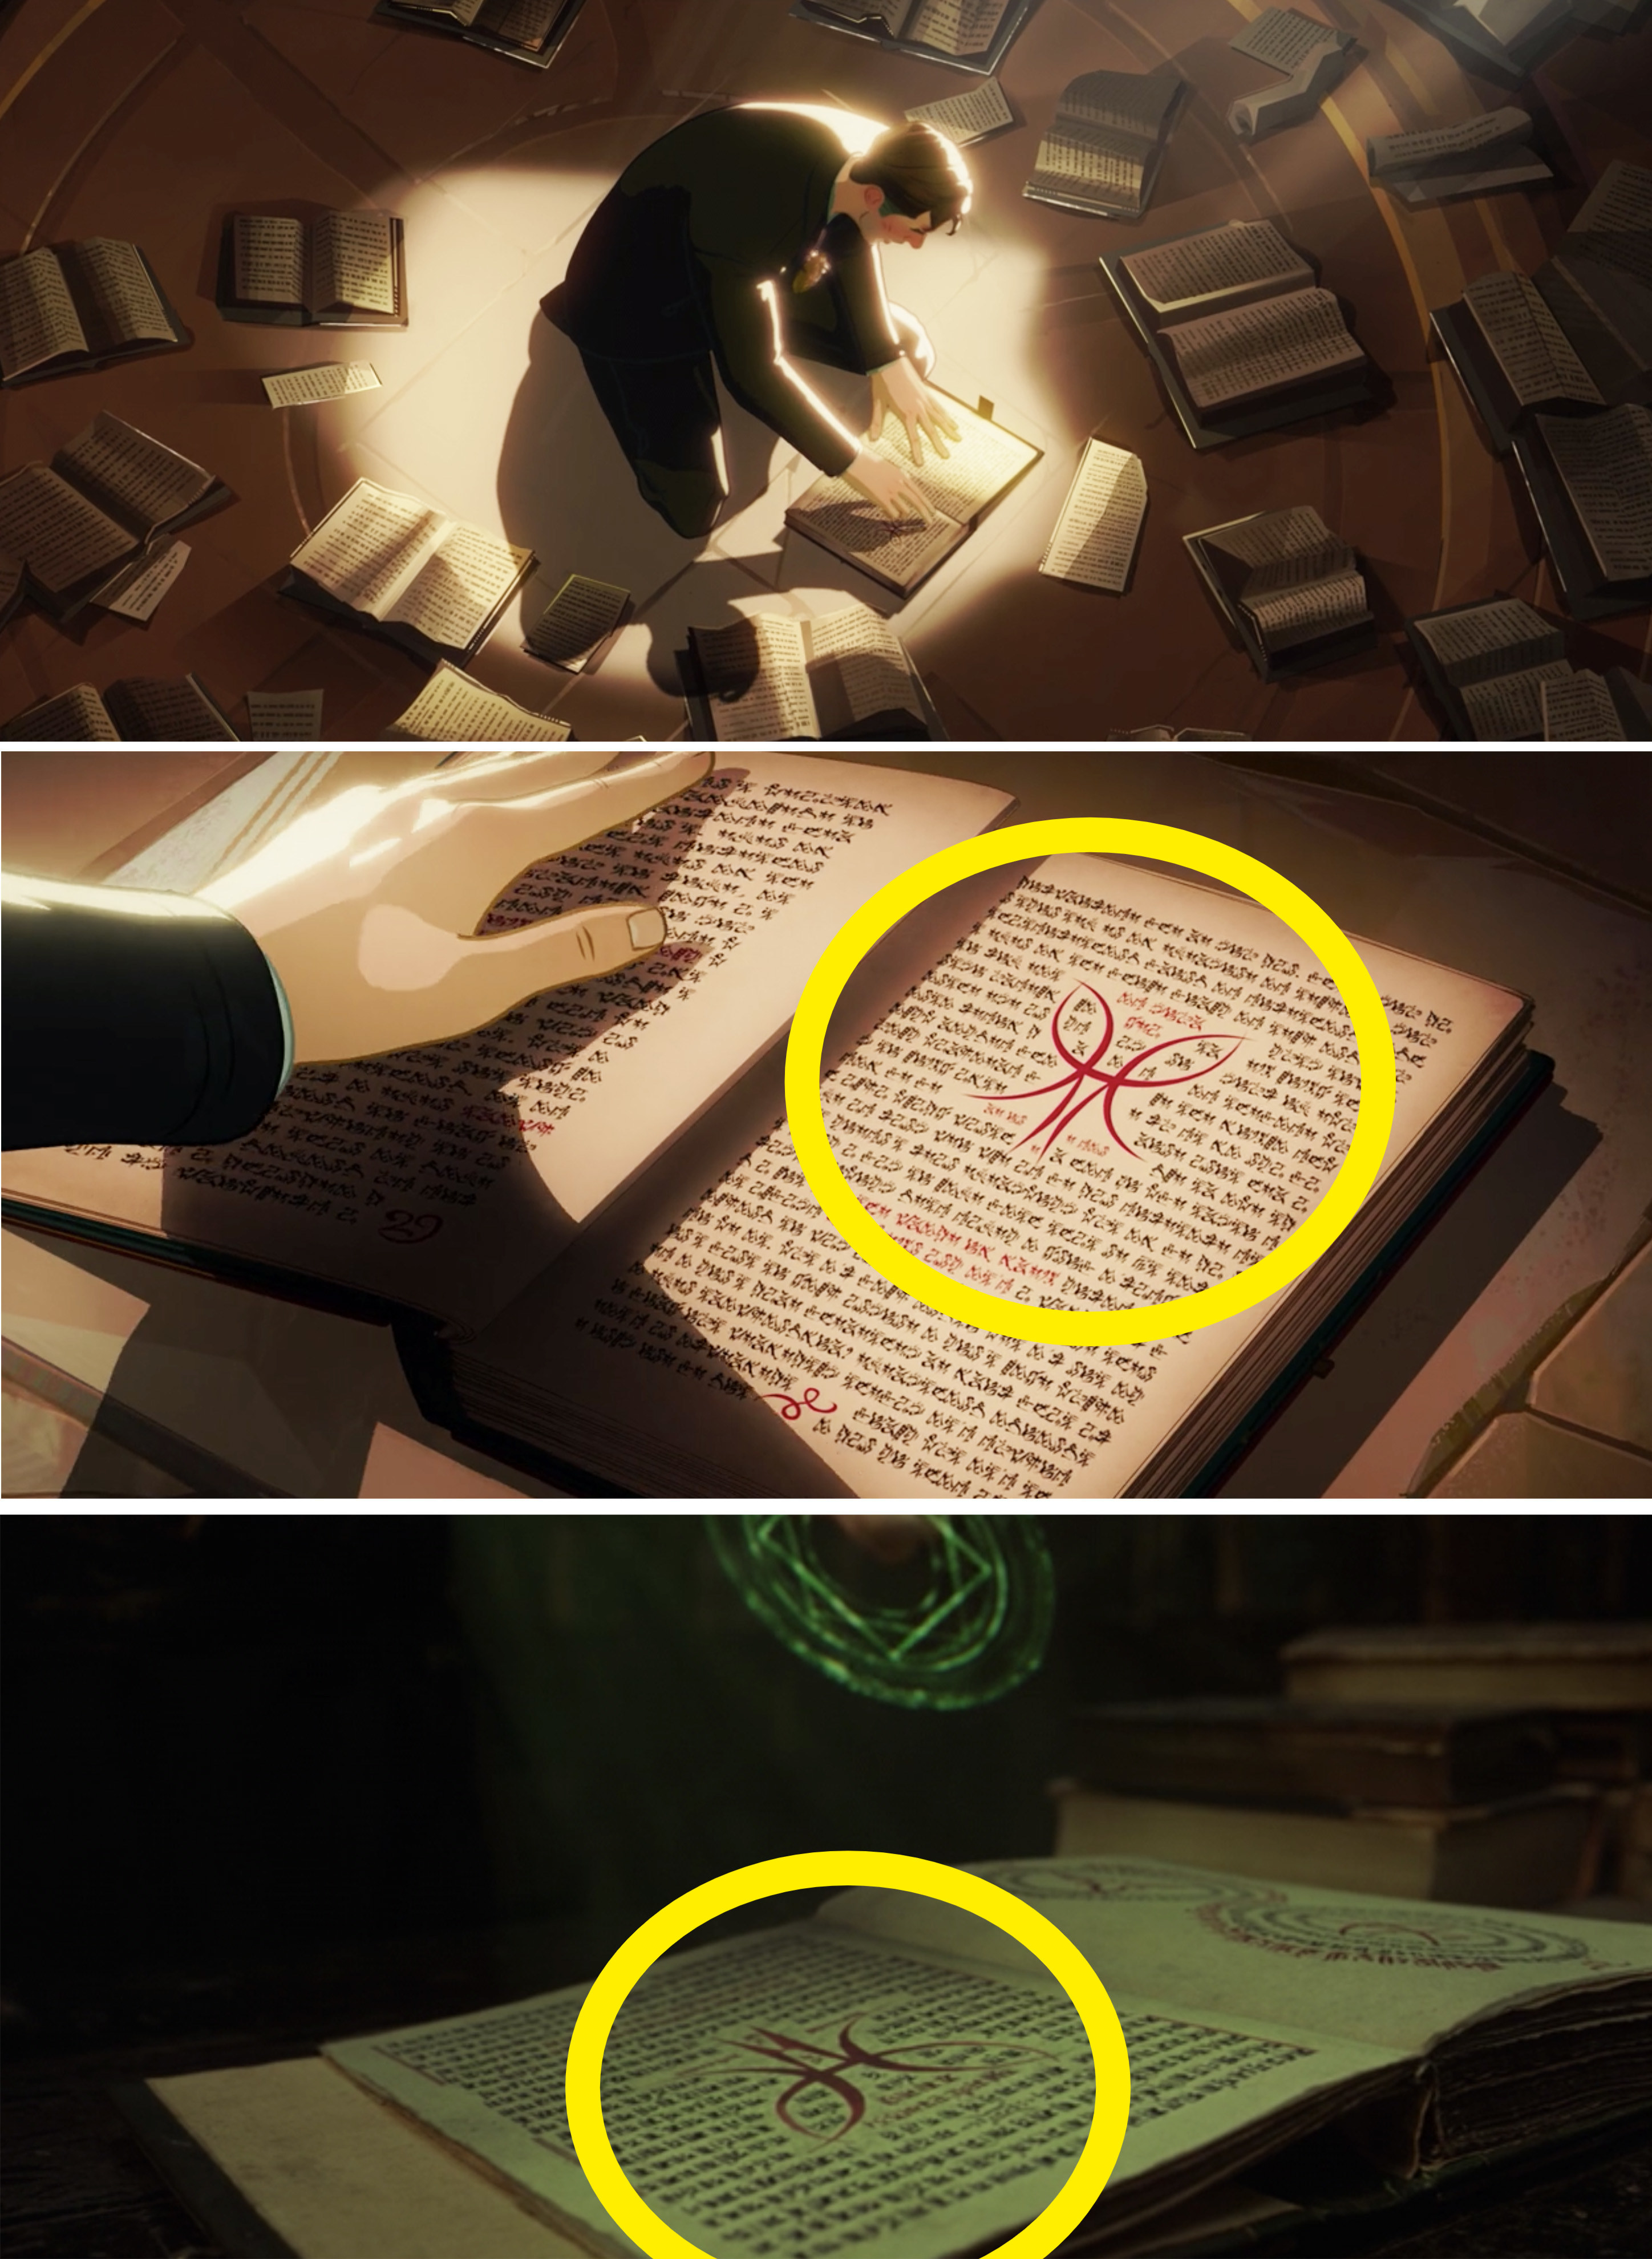 A close-up of Stephen's book with a red symbol in the middle of a page